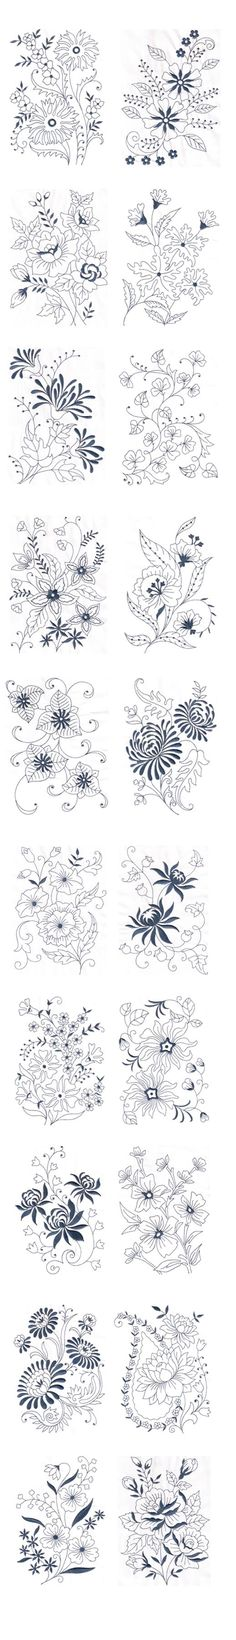 Amazing Emotions - Vintage Florals 01 Machine Embroidery Designs --- Vintage Florals 01 These fabulous vintage floral designs can add supreme beauty to your products like bed linen, bath linen, kitchen linen, curtains and even dresses. You can notice the variety in the floral designs For more details visit www.embroideryemotions.com #Woodburningpatterns